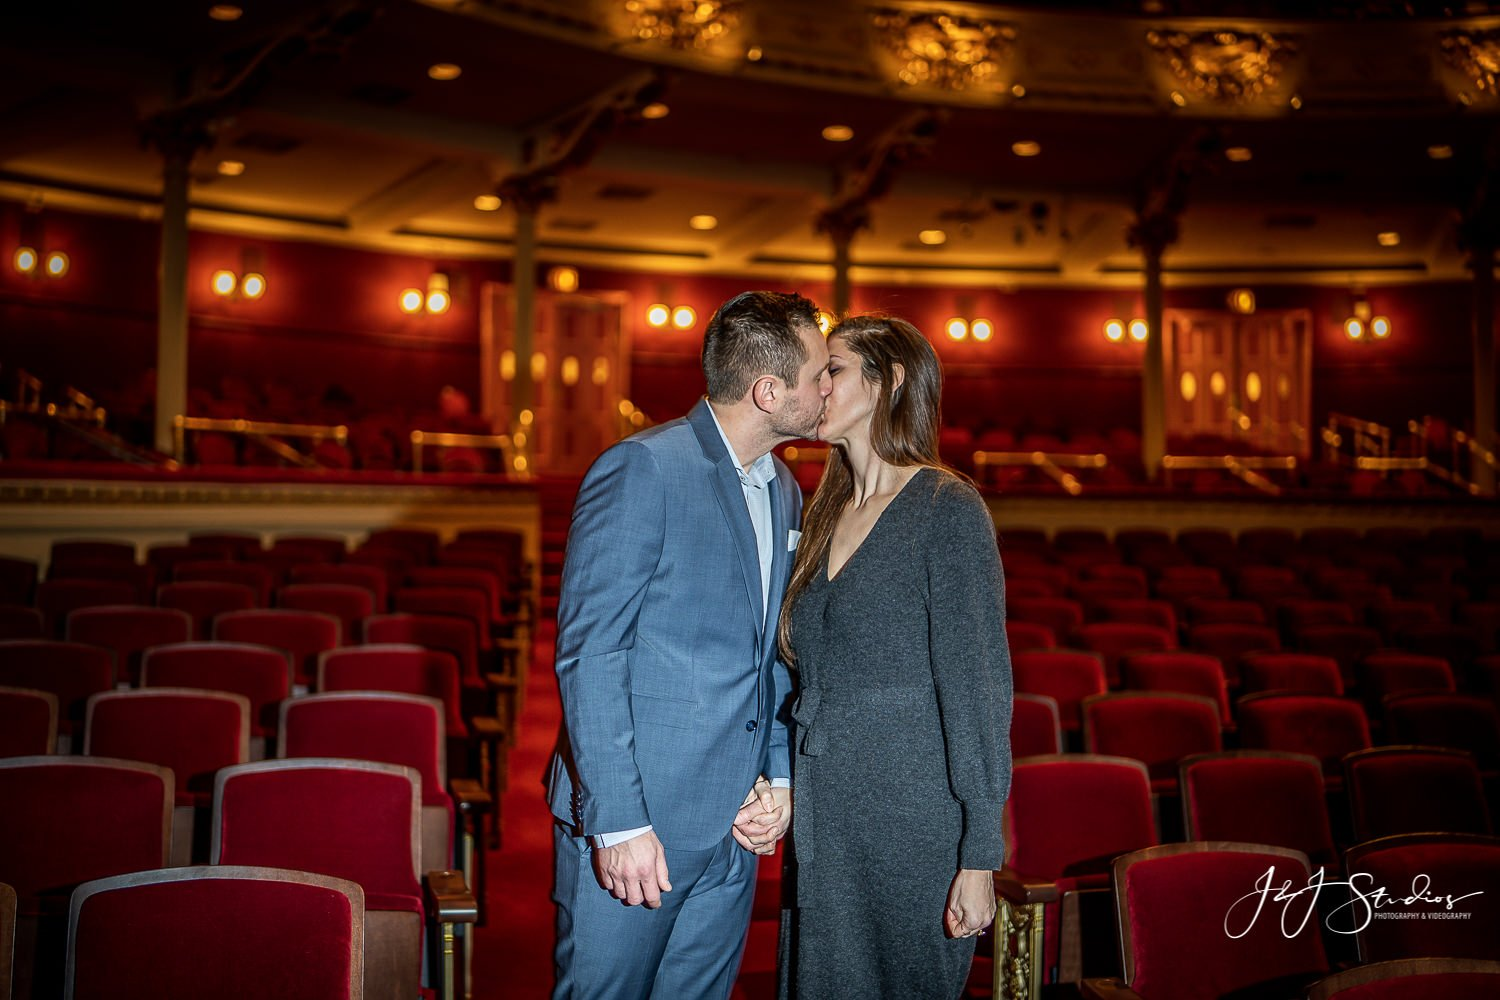 happily ever after at academy of music